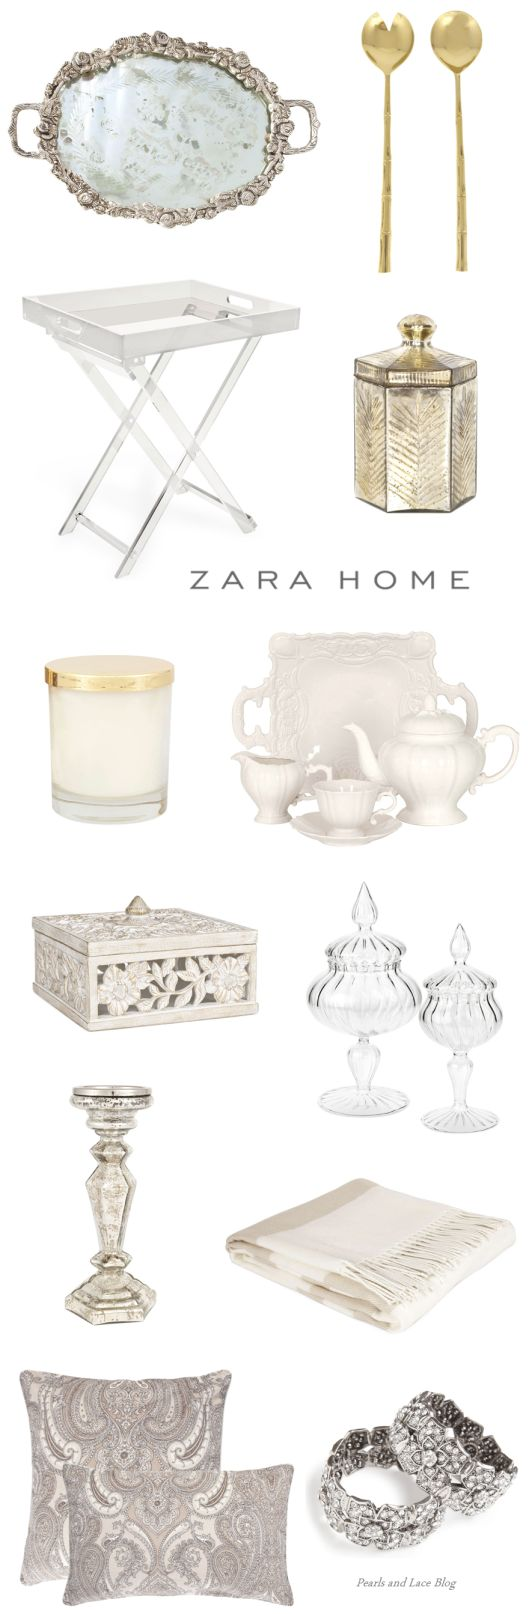 Zara Home dinning room essentials